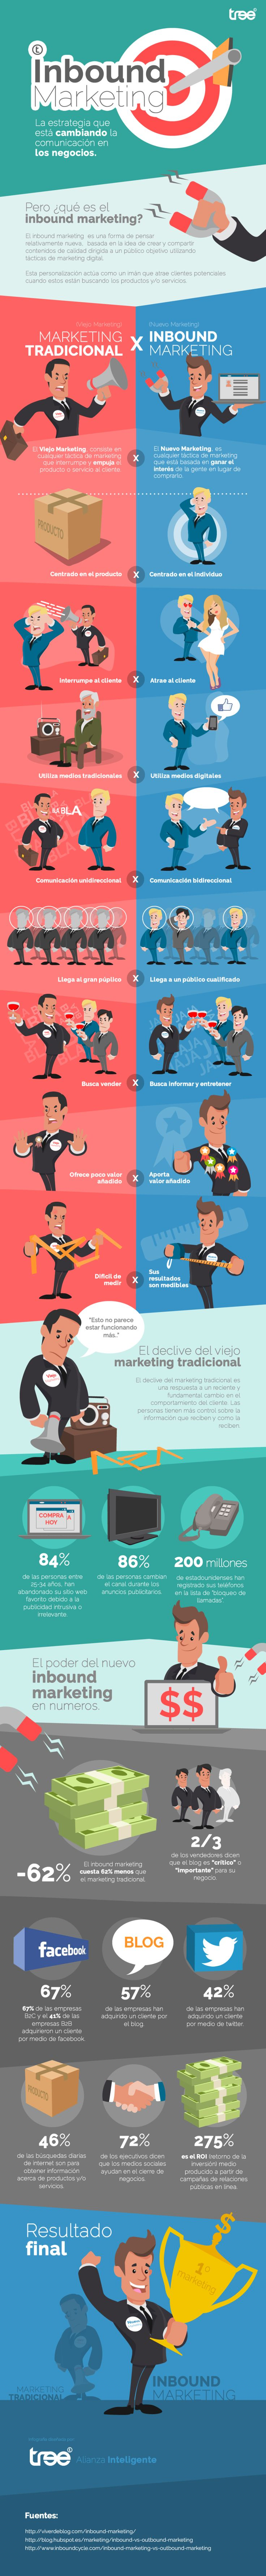 Inbound Marketing vs Marketing tradicional #infografia #infographic #marketing